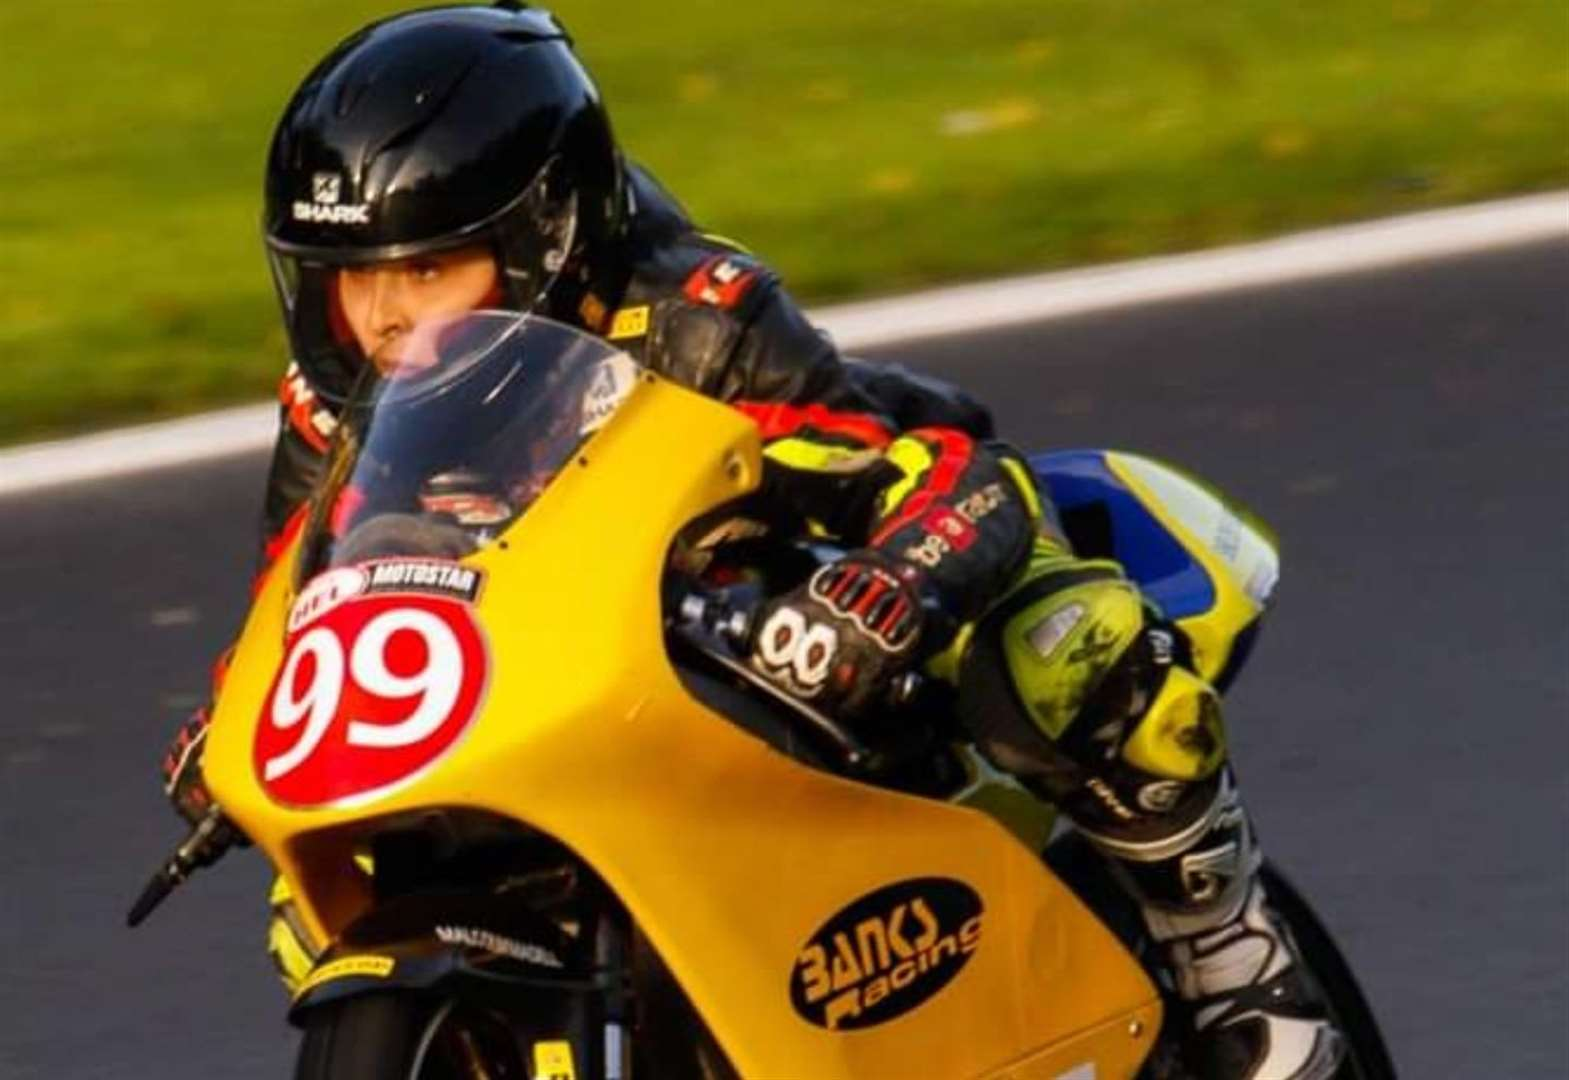 March teenage racer to appear on Eurosport and ITV4 after 2020 deal